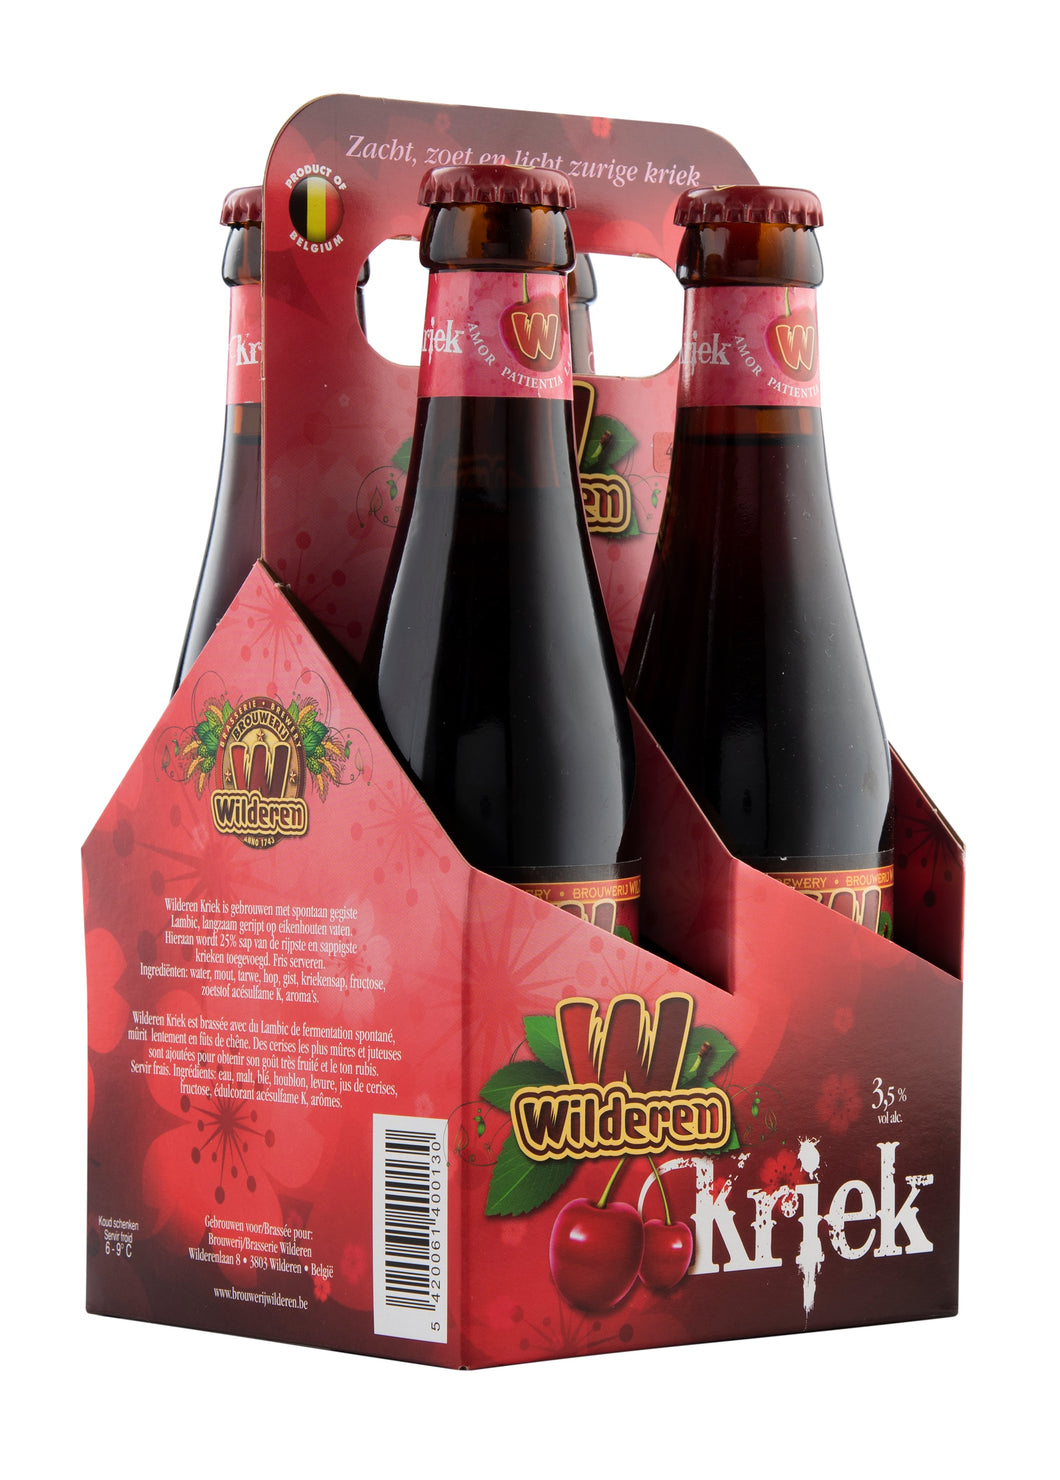 Wilderen Kriek 3,5% 4x25cl